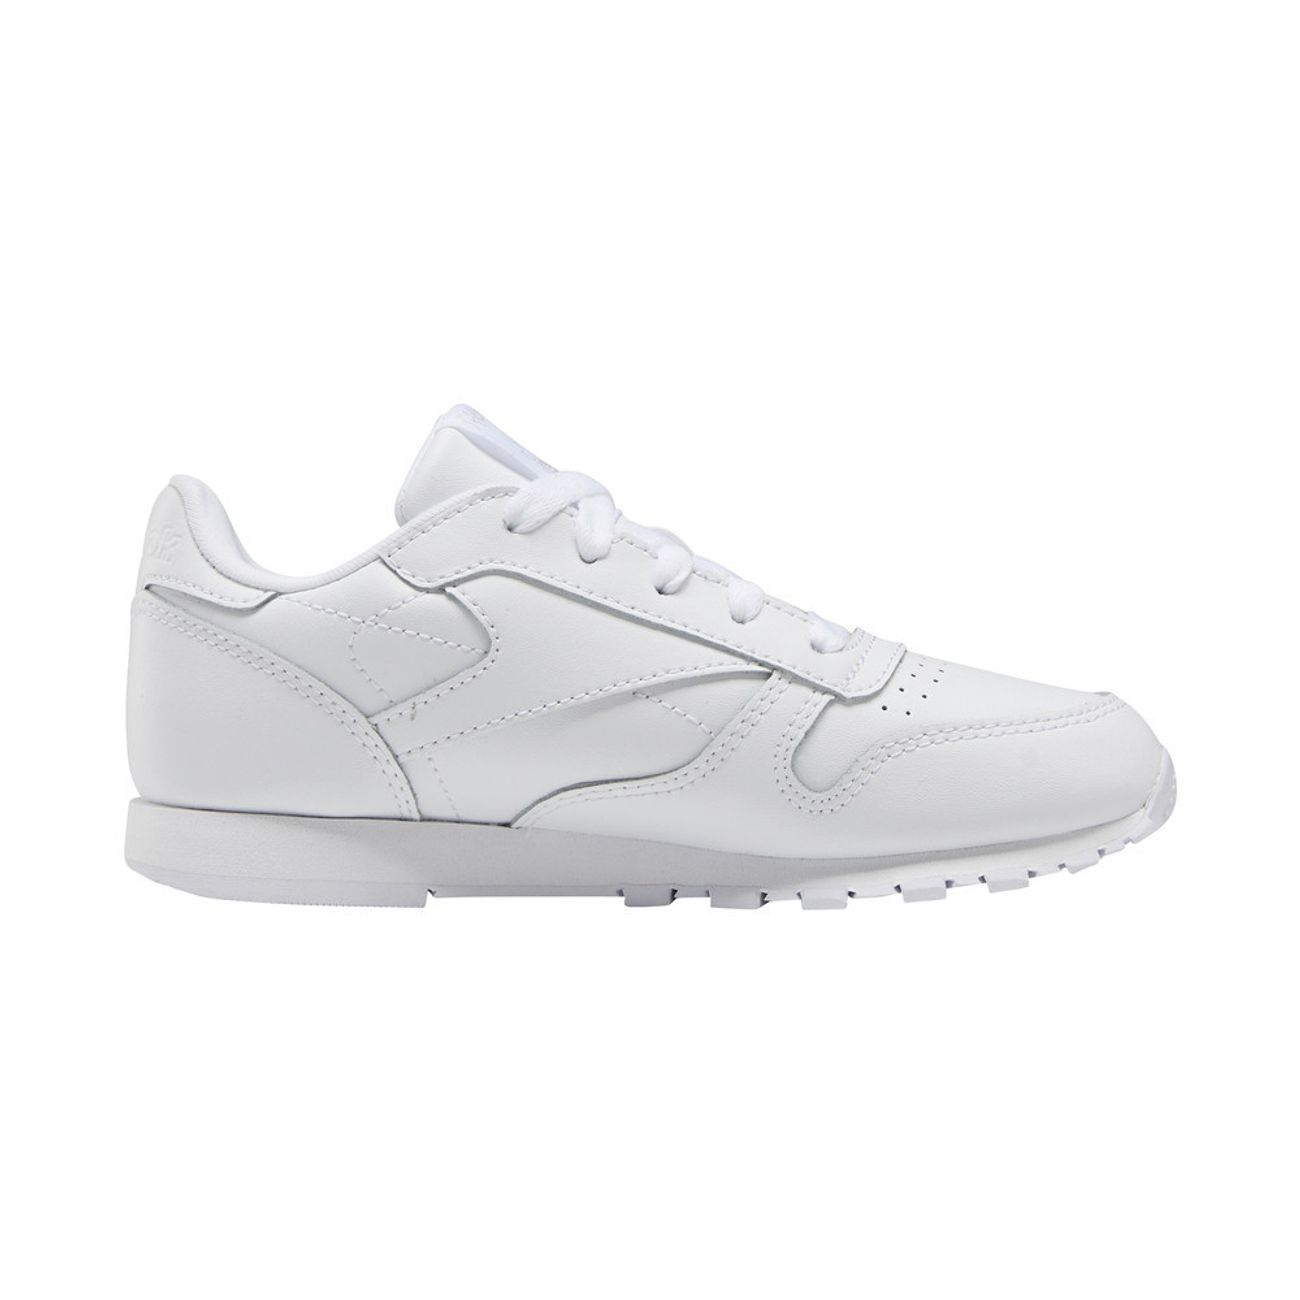 Mode- Lifestyle enfant REEBOK REEBOK, Classic leather, Blanc/blanc/blanc